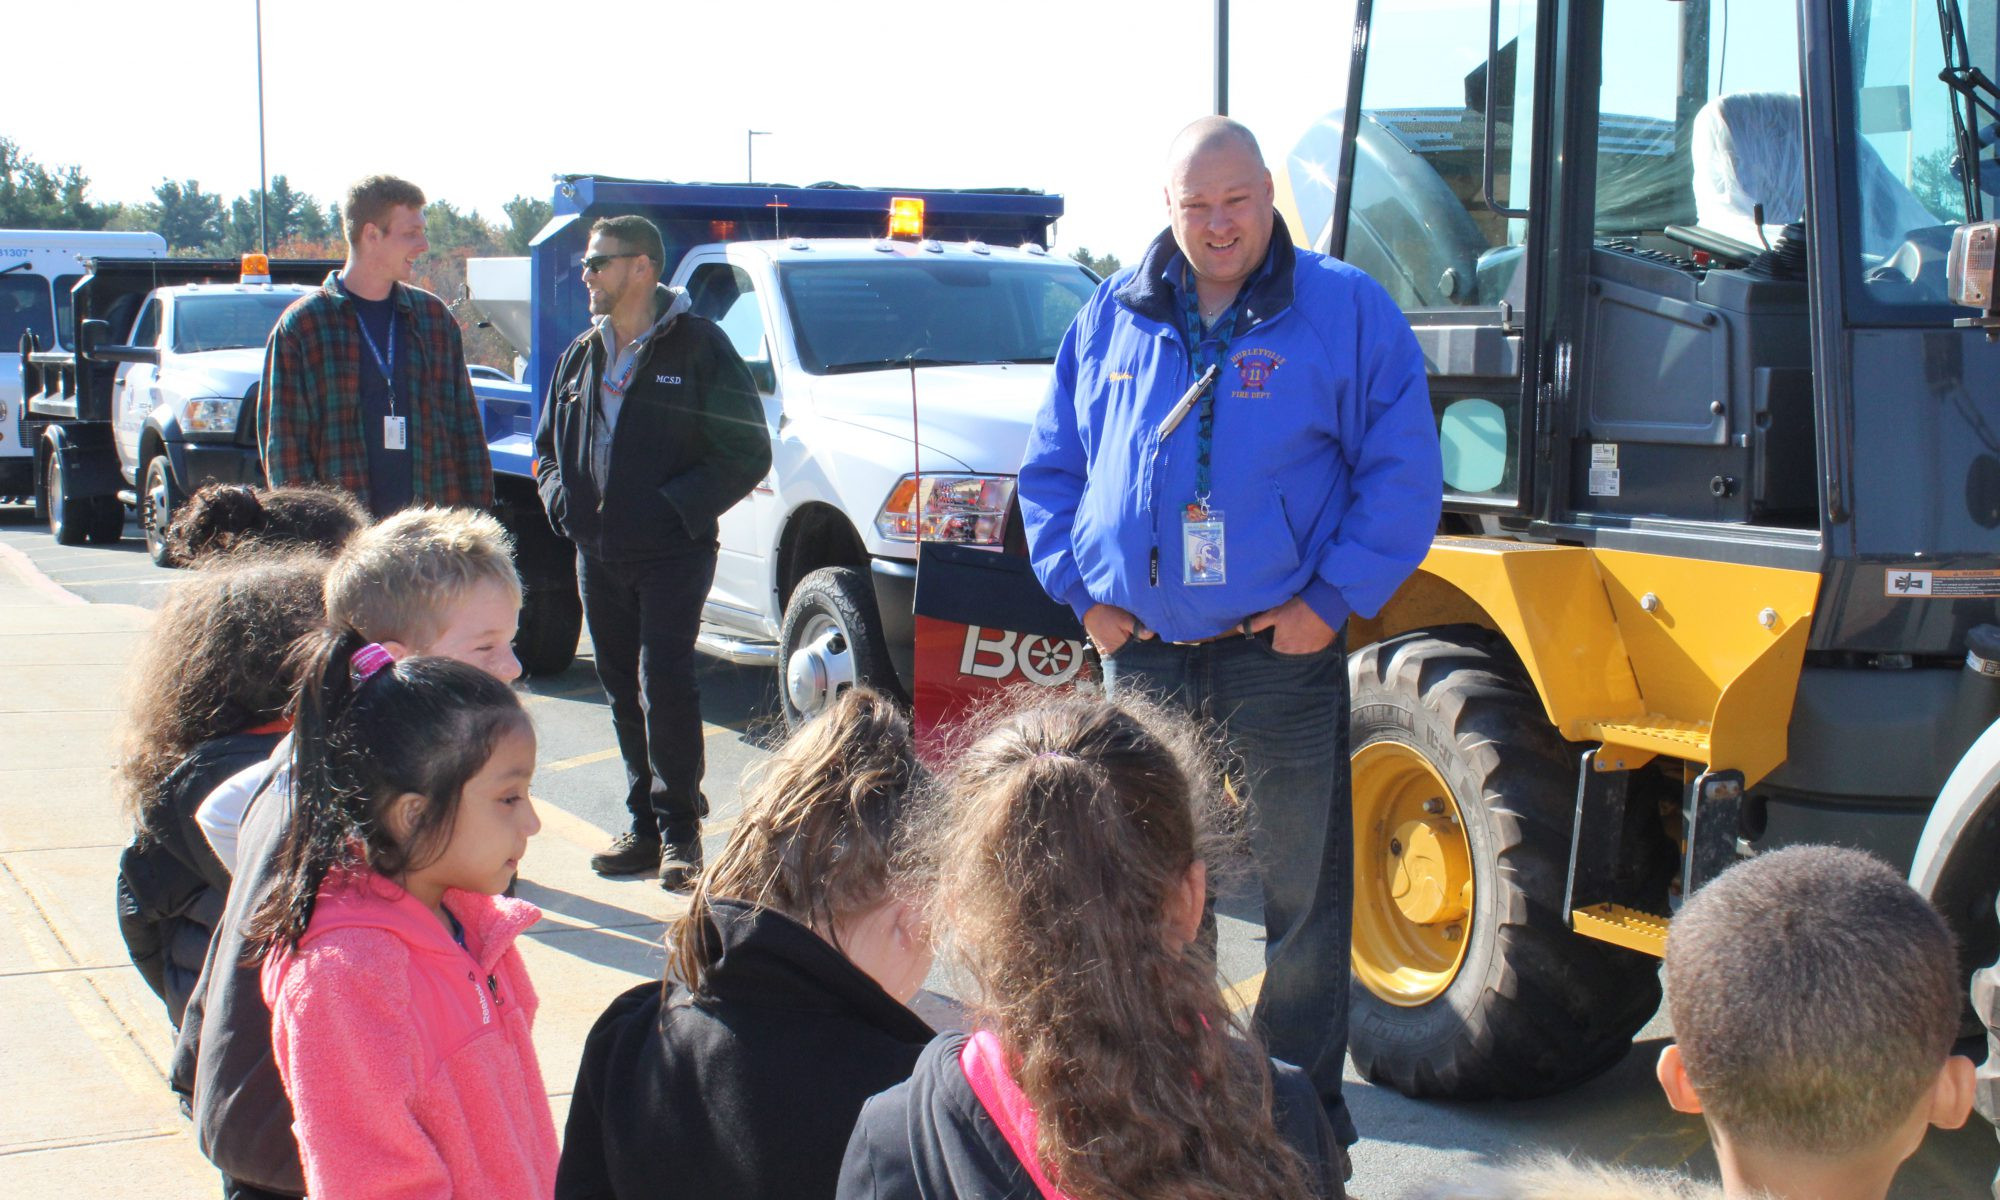 A man in a blue winter jacket speaks to a group of elementary students about facilities. There are many different trucks behind him.